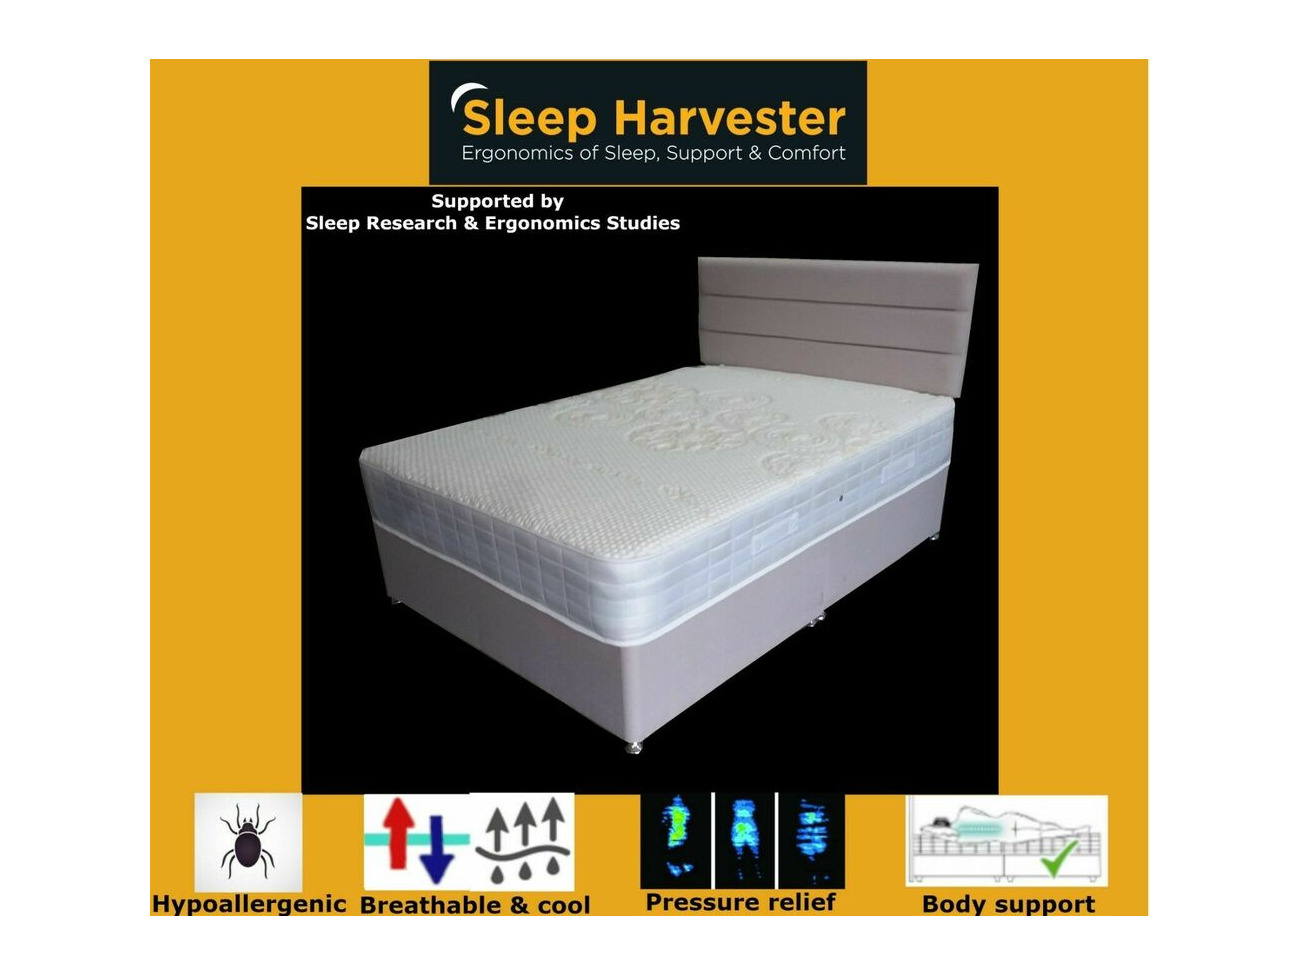 Single Pocket Sprung Memory Foam Mattress Buy Luxury Pocket Sprung Mattress Memory Foam Quilted Border